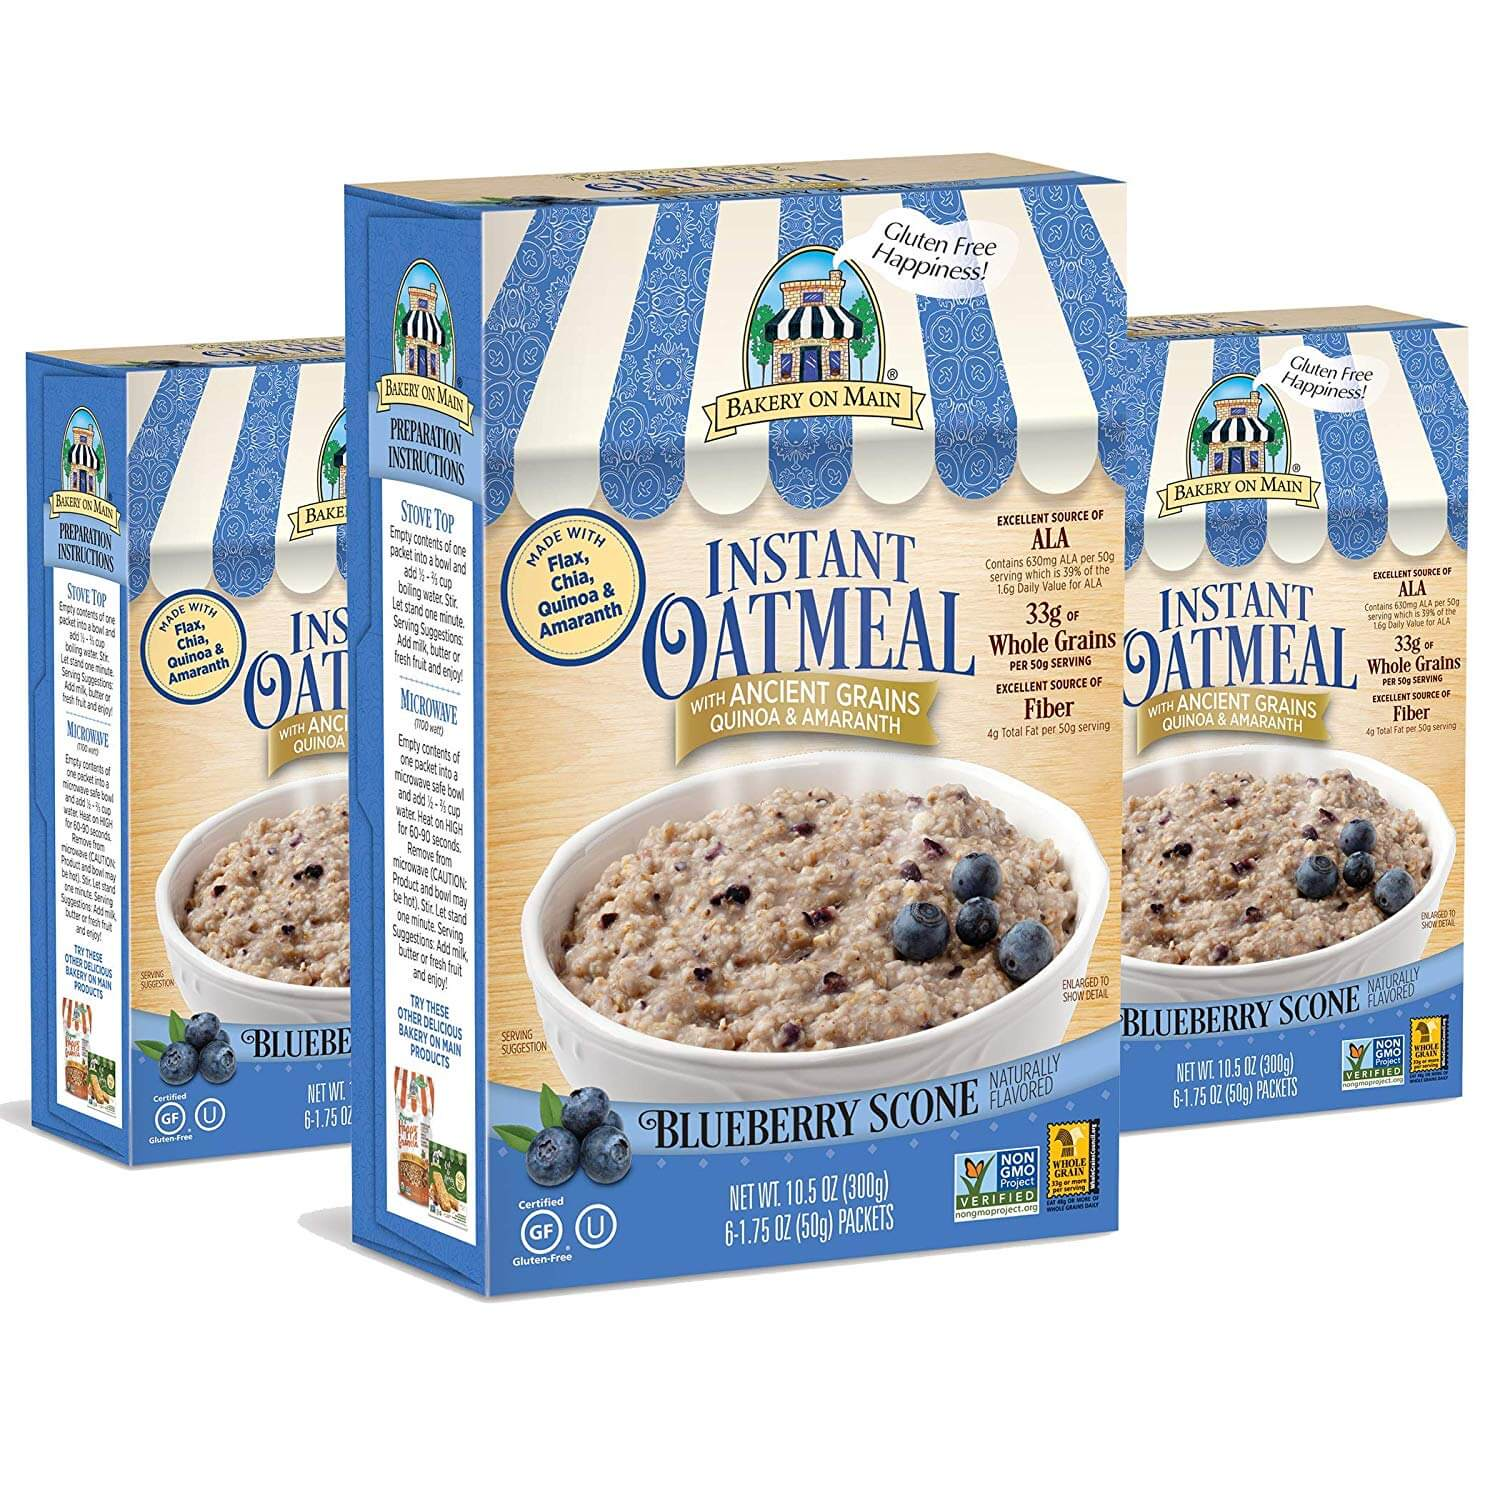 Bakery on Main Ancient Grains Gluten Free Instant Oatmeal